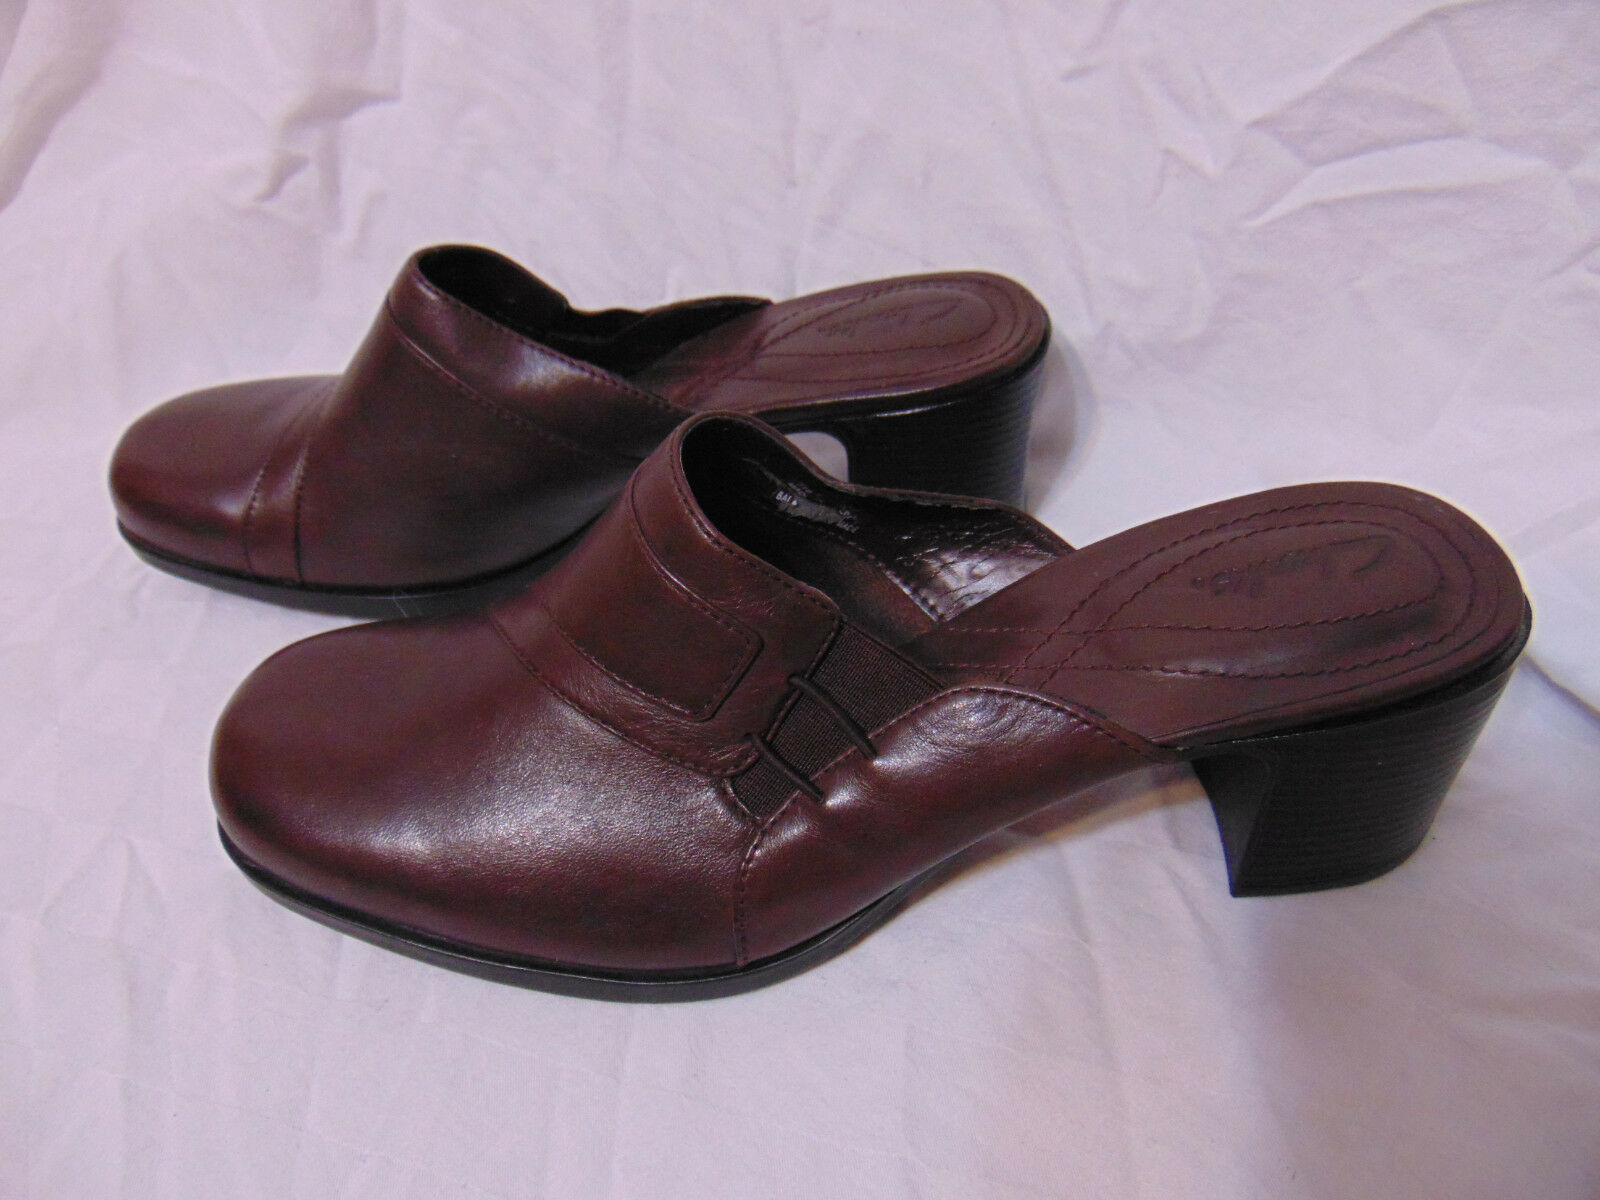 Clarks Womens Shoes Mules Slides Chunky Heel Shoes Womens 8.M Dark Brown Leather Style 71024 c3f287